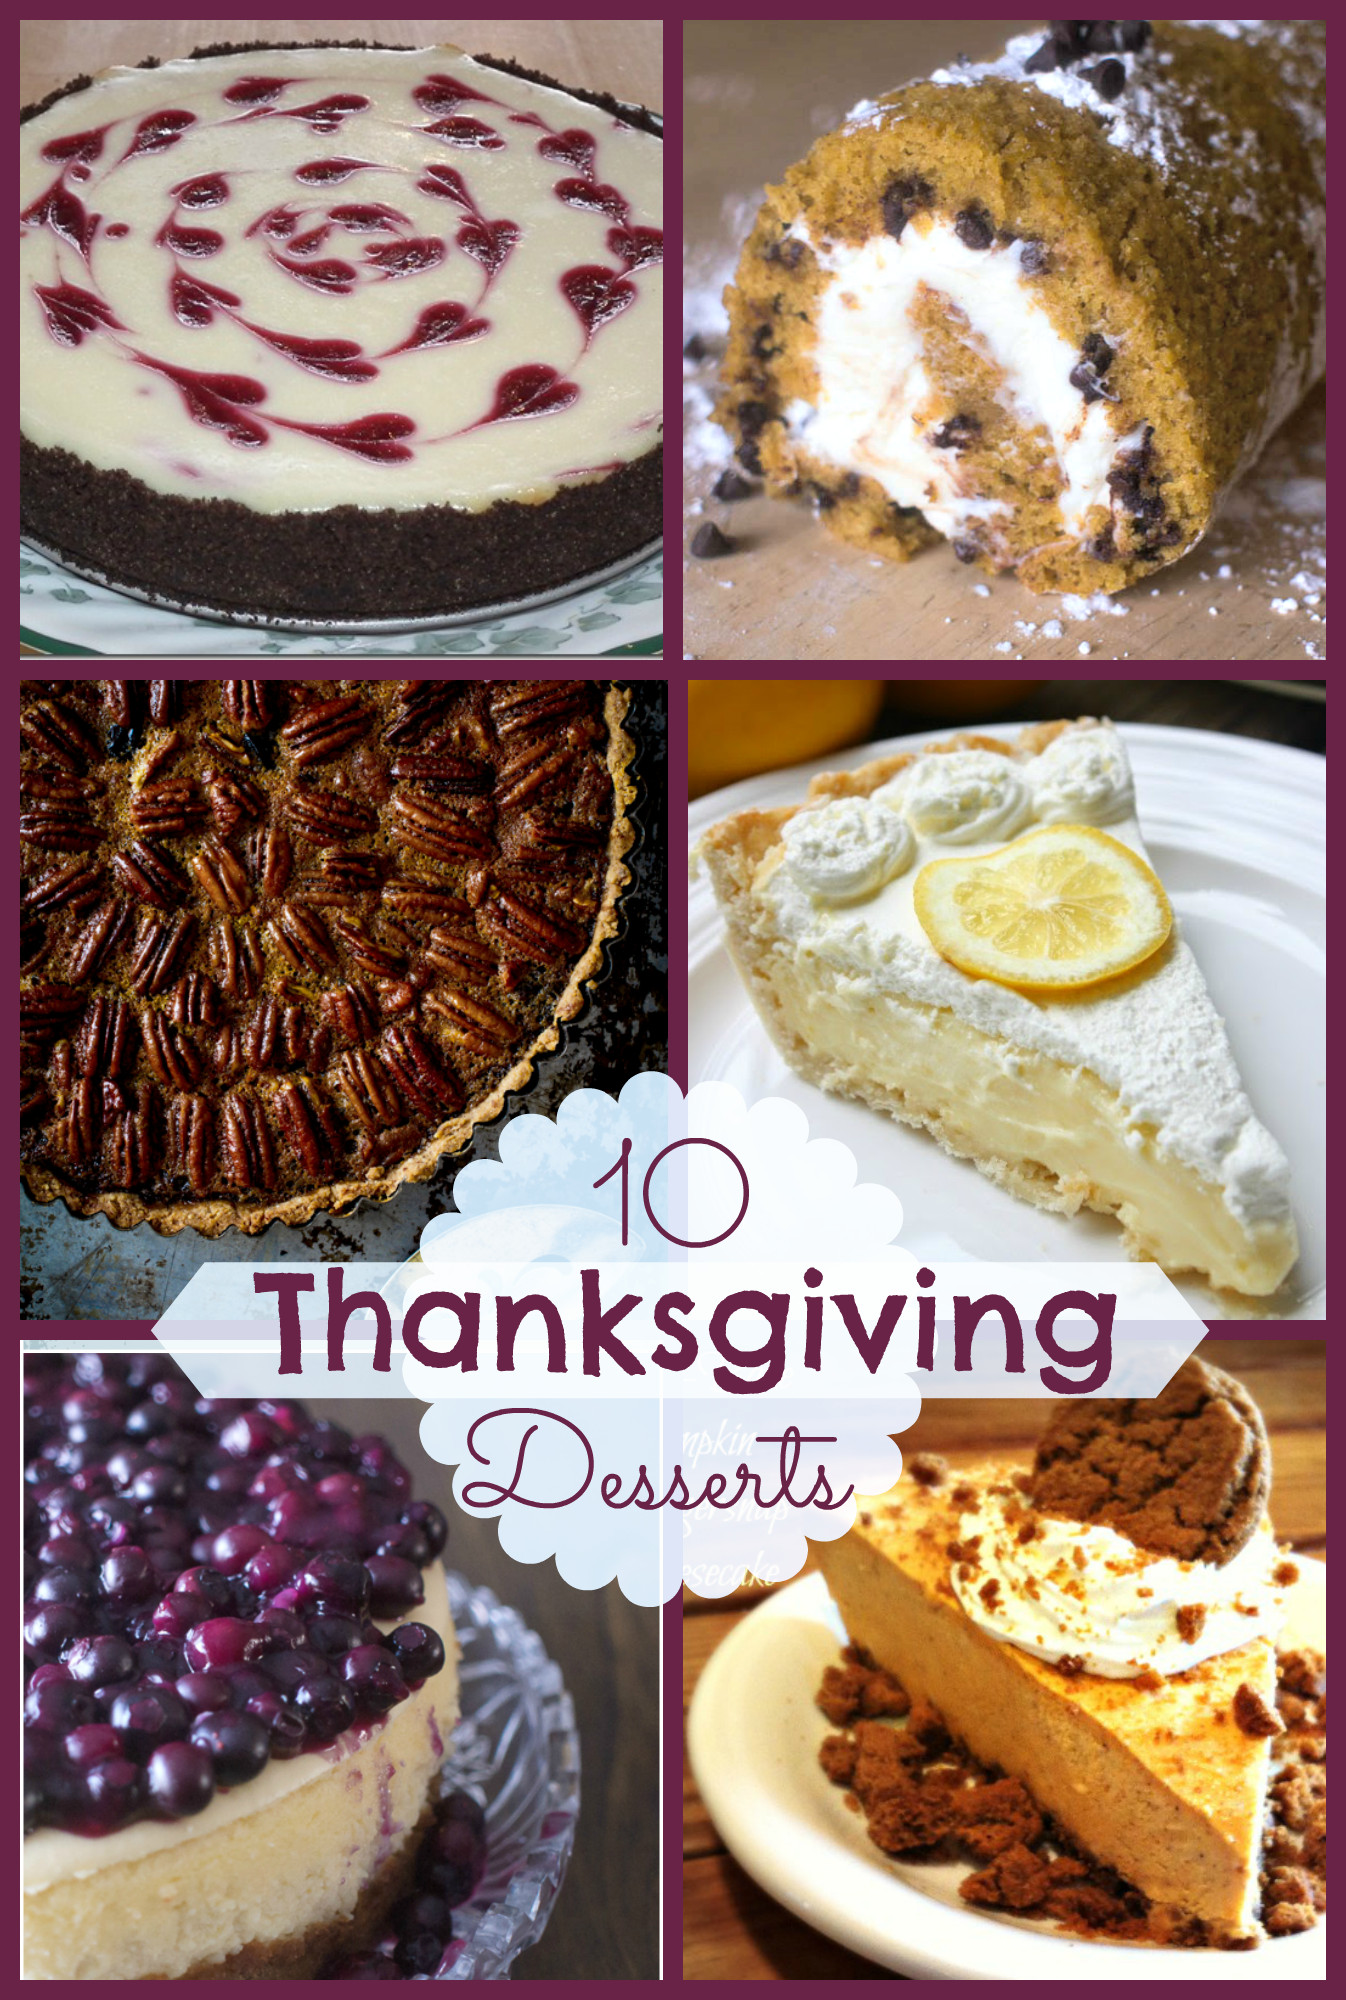 Thanksgiving Recipes Desserts  10 Fabulous Thanksgiving Desserts